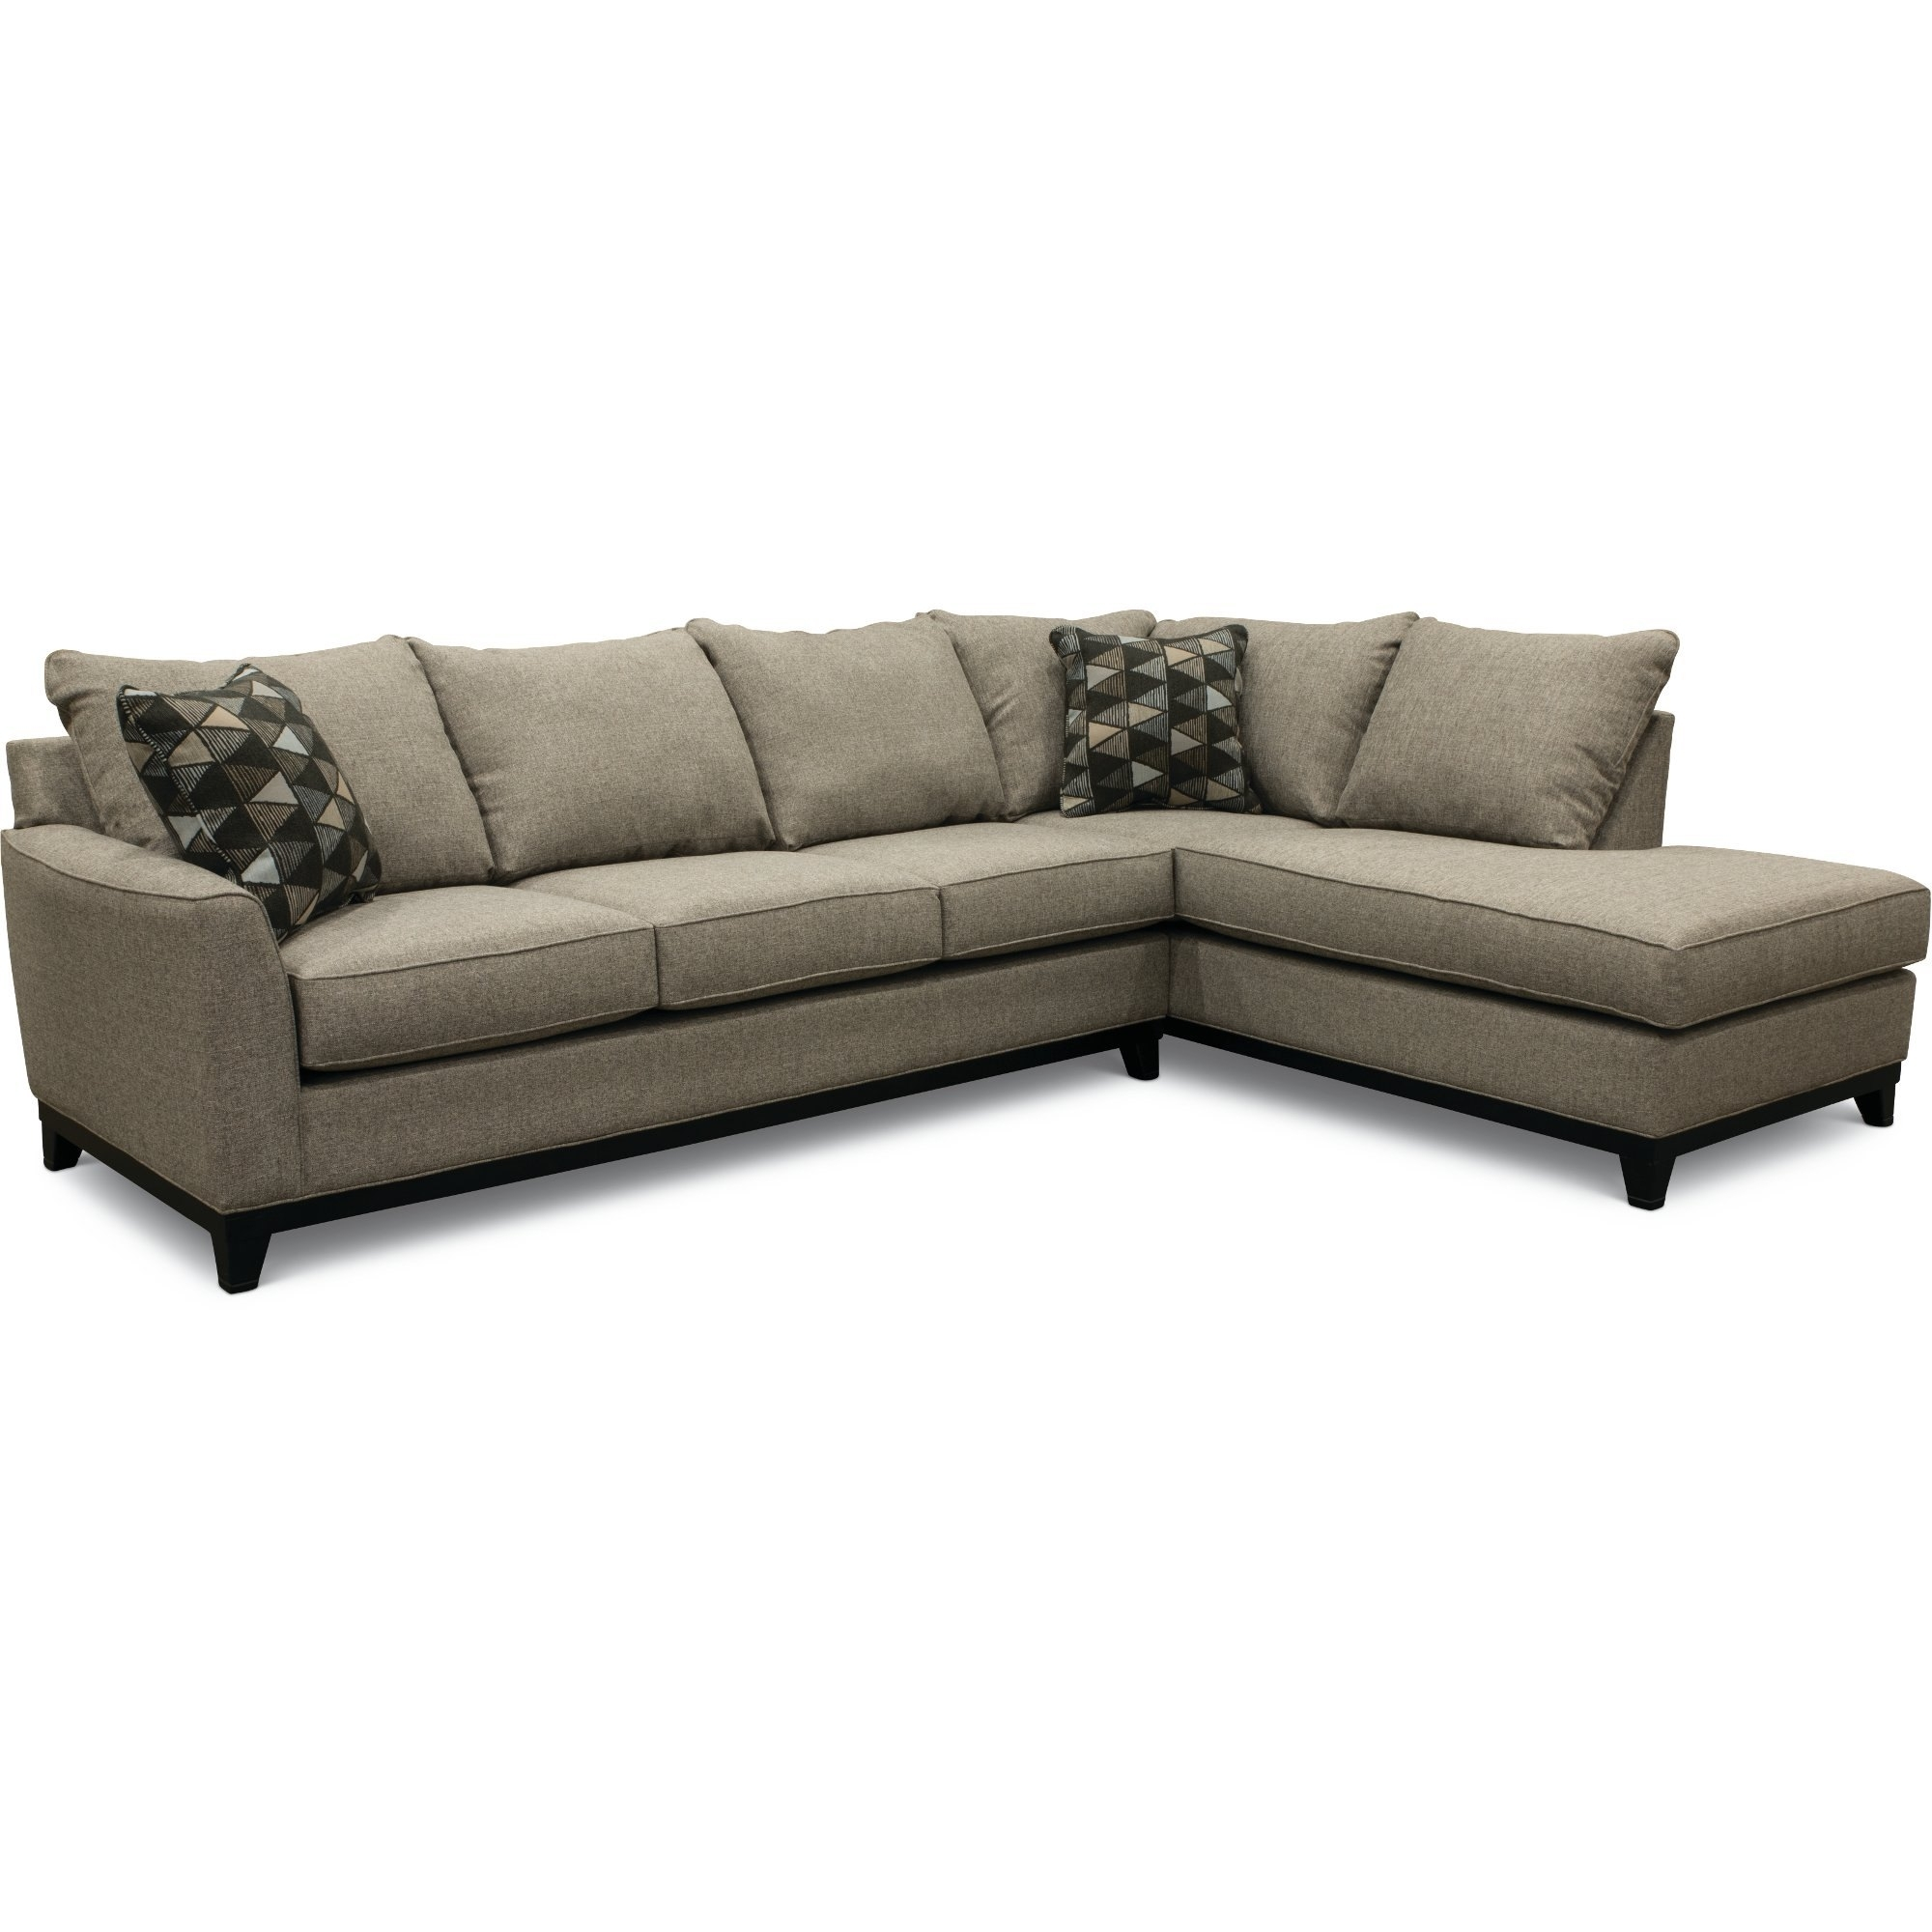 Sofa Sectional | Nokomis Charcoal Laf Sectional With Regard To Aquarius Light Grey 2 Piece Sectionals With Raf Chaise (Image 25 of 25)